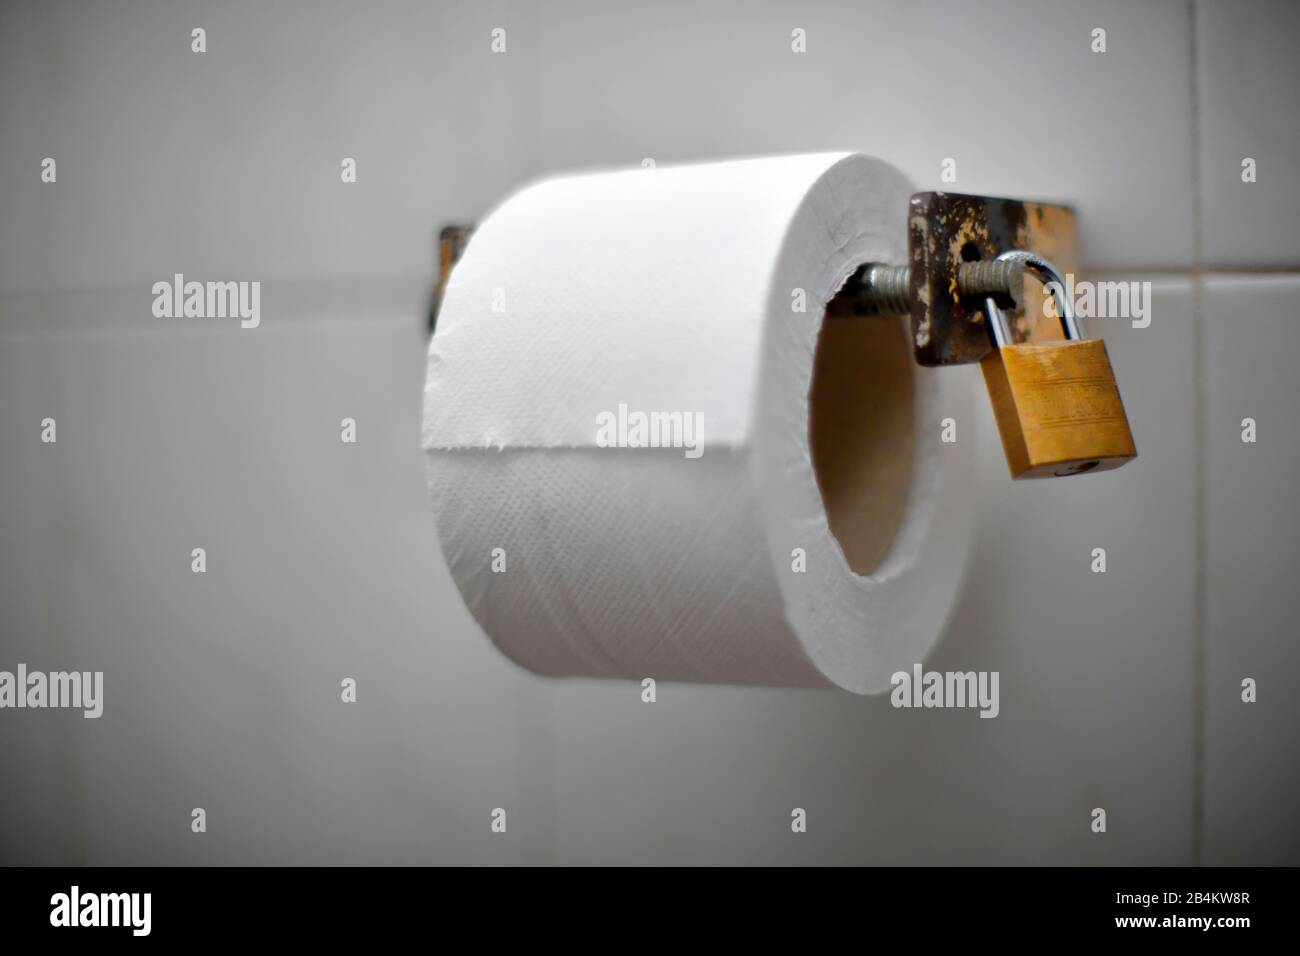 Toilet Paper Roll Secured With A Padlock To Prevent It From Being Taken Away Madeira Island Portugal Stock Photo Alamy